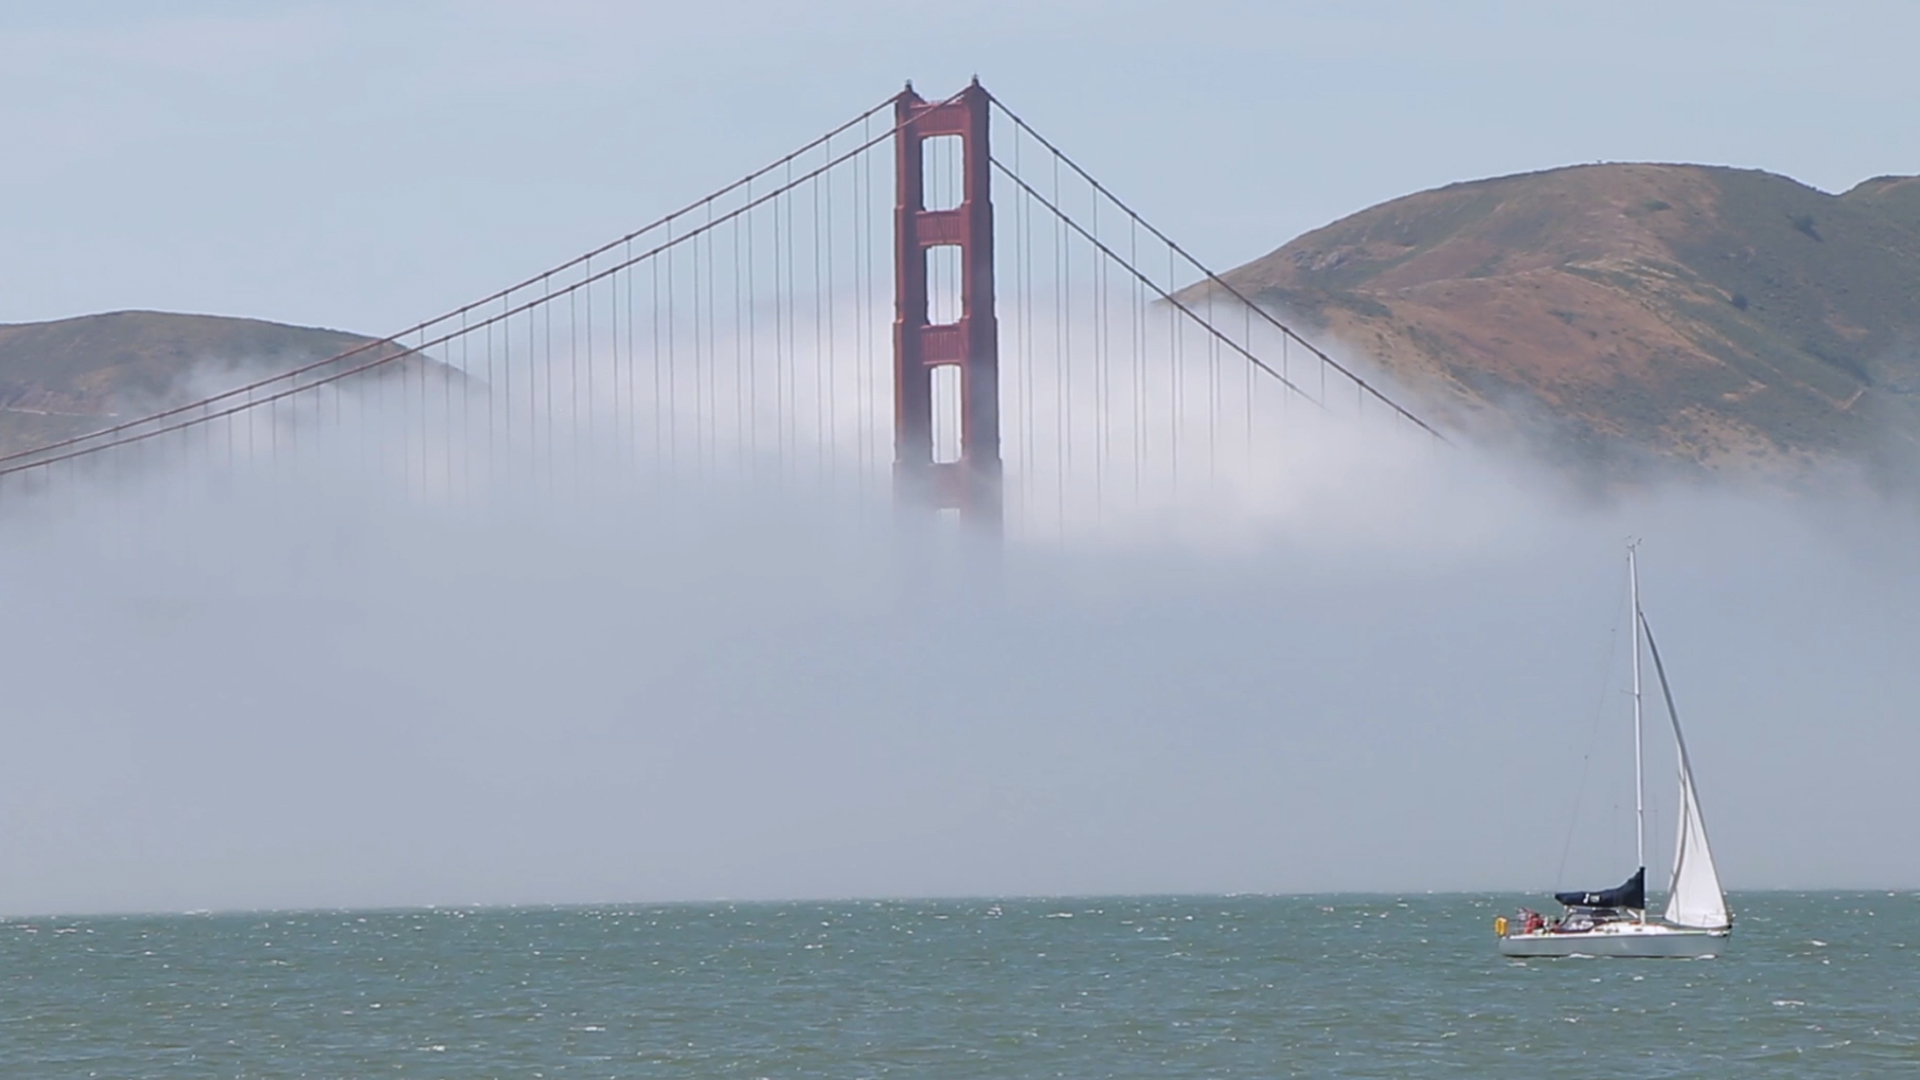 Golden Gate Bridge Sail Boat Fog